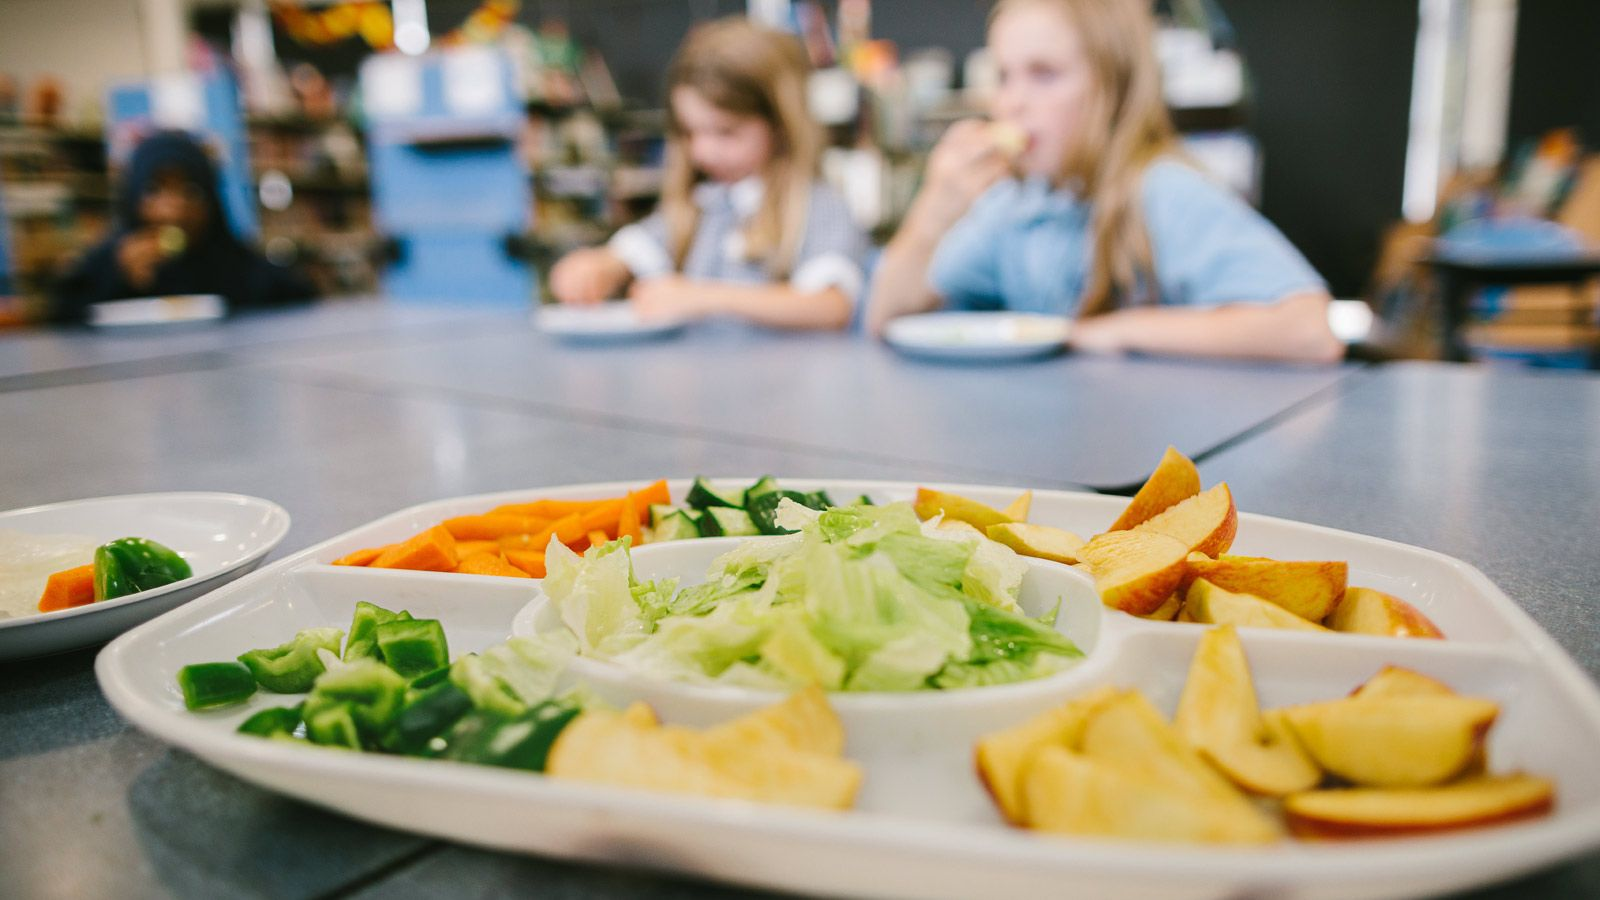 Healthy Eating for Children: 6 Ways to Build Healthy Habits for Children During COVID-19